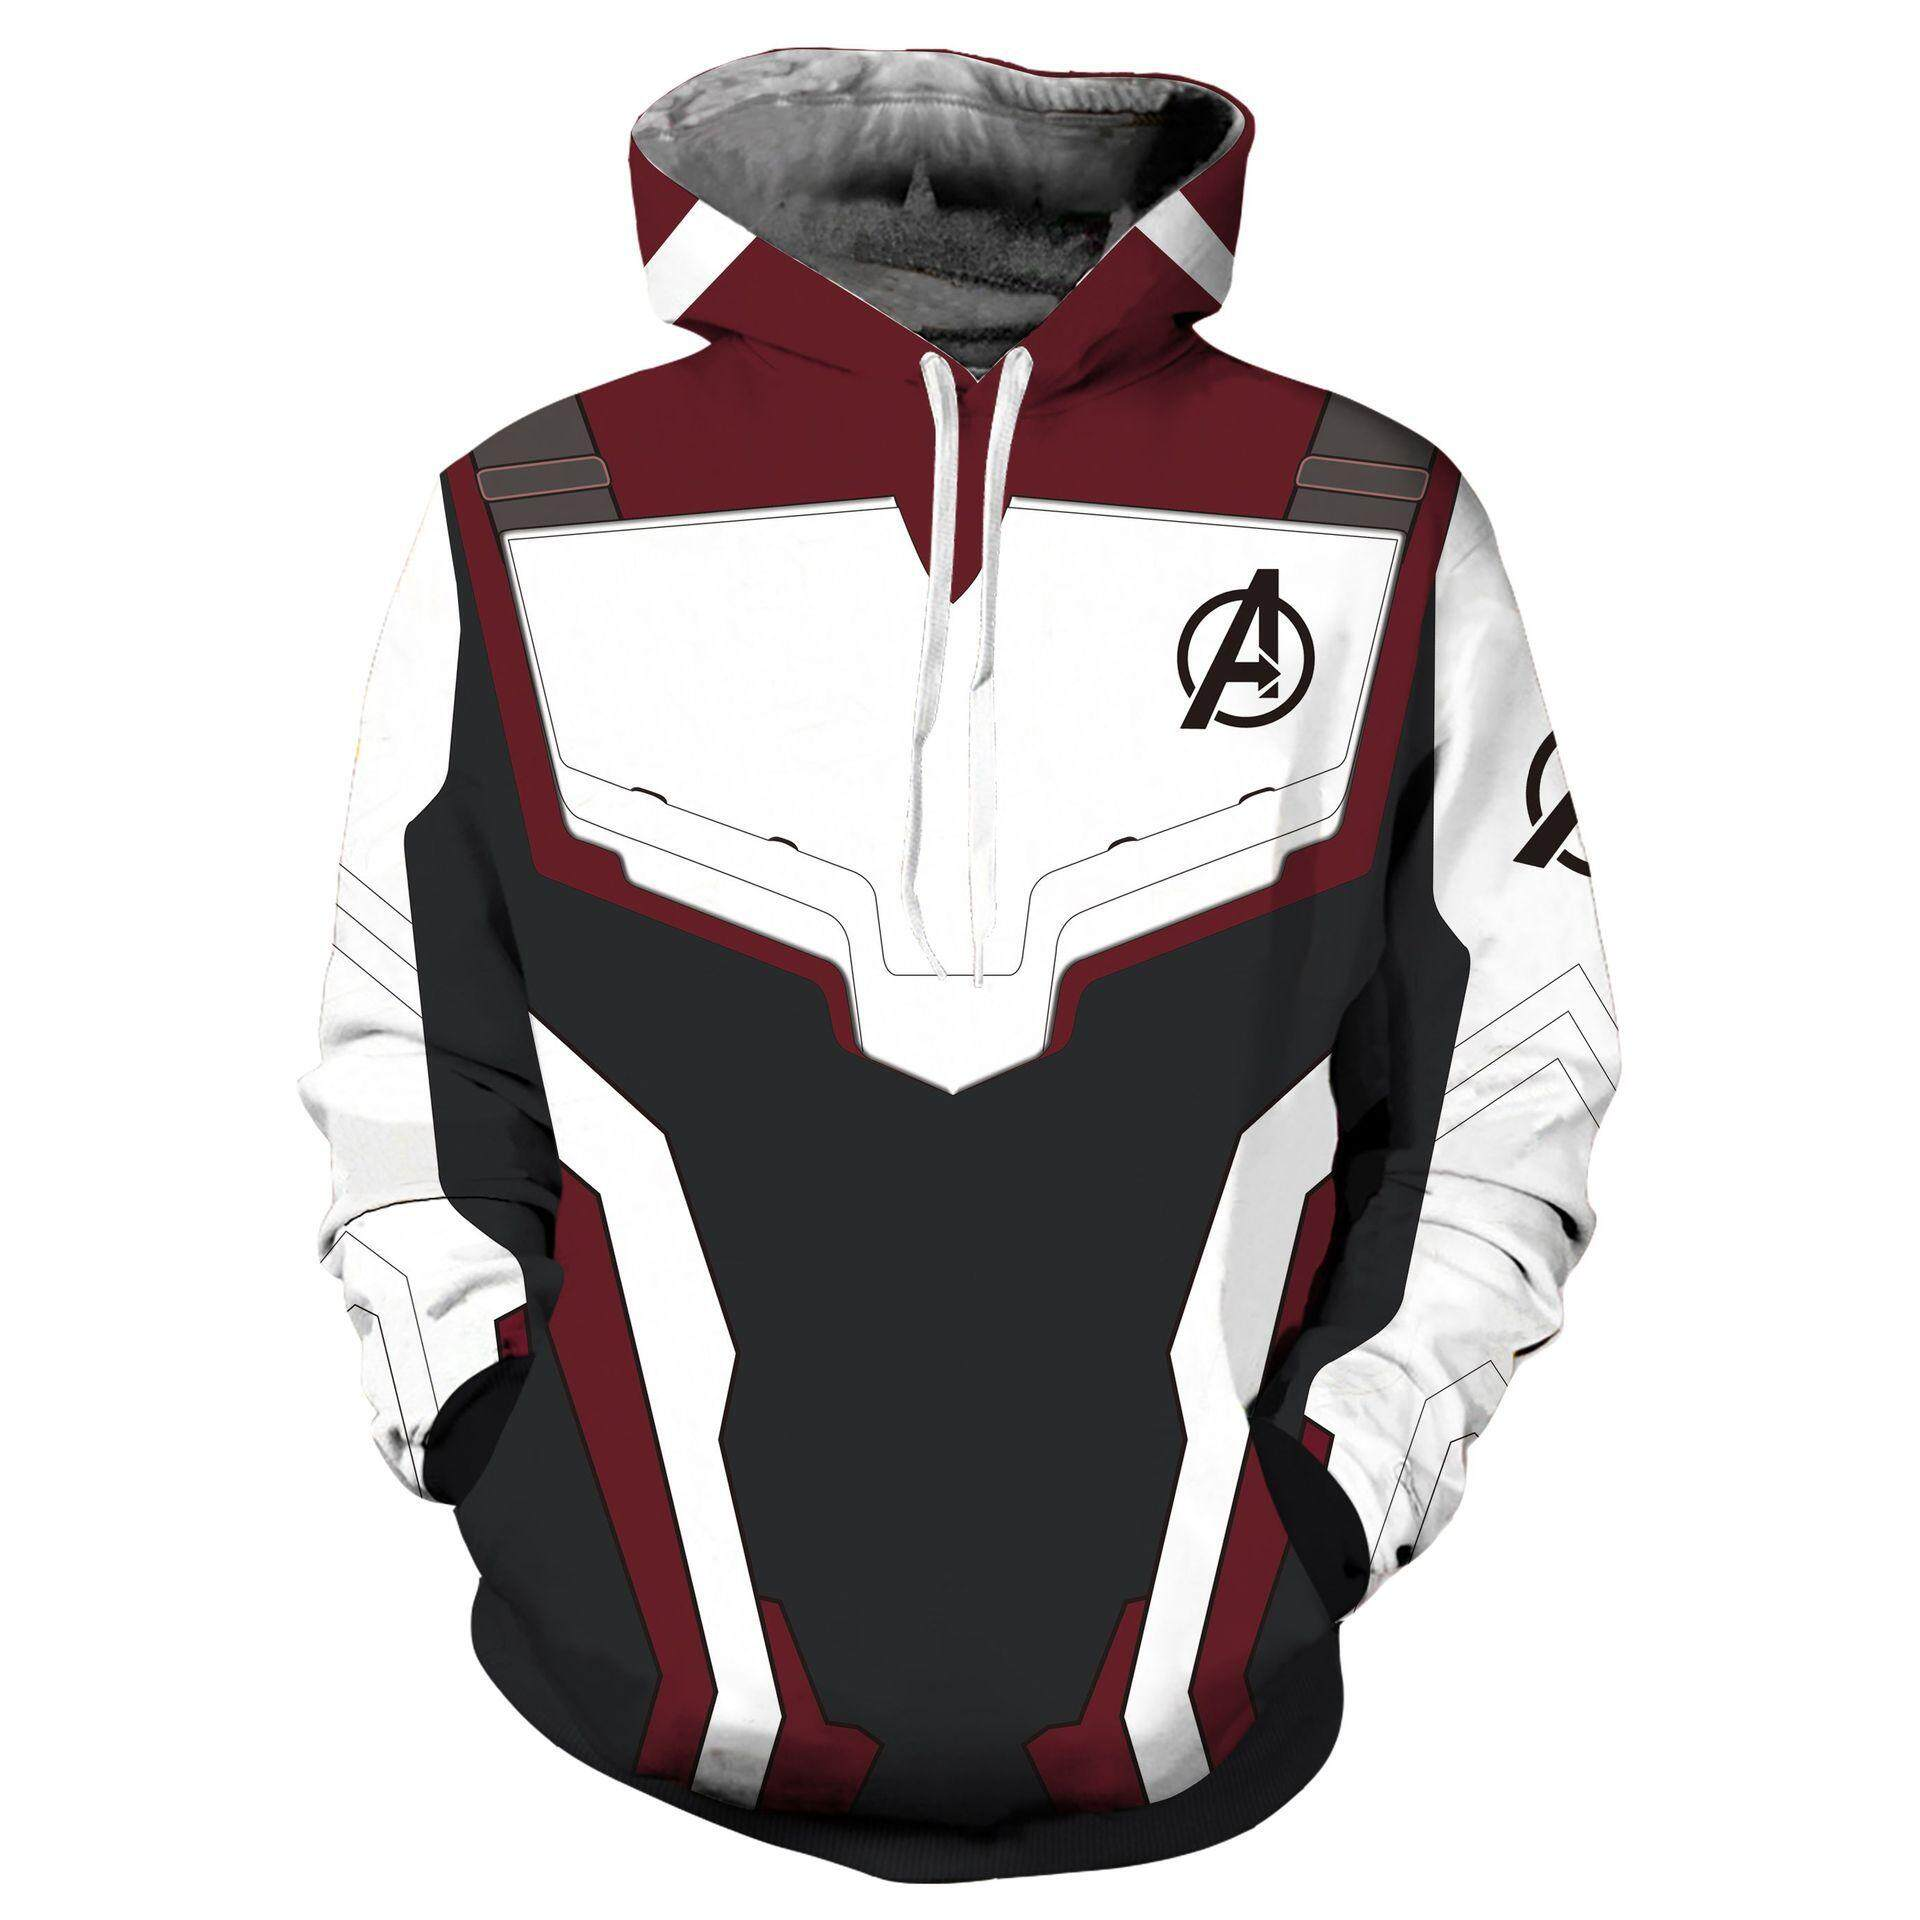 ff8bca630bf The Avengers 4 Endgame Quantum Realm Sweatshirt Jacket Advanced Tech  Superhero Iron Man Hoodies Suit